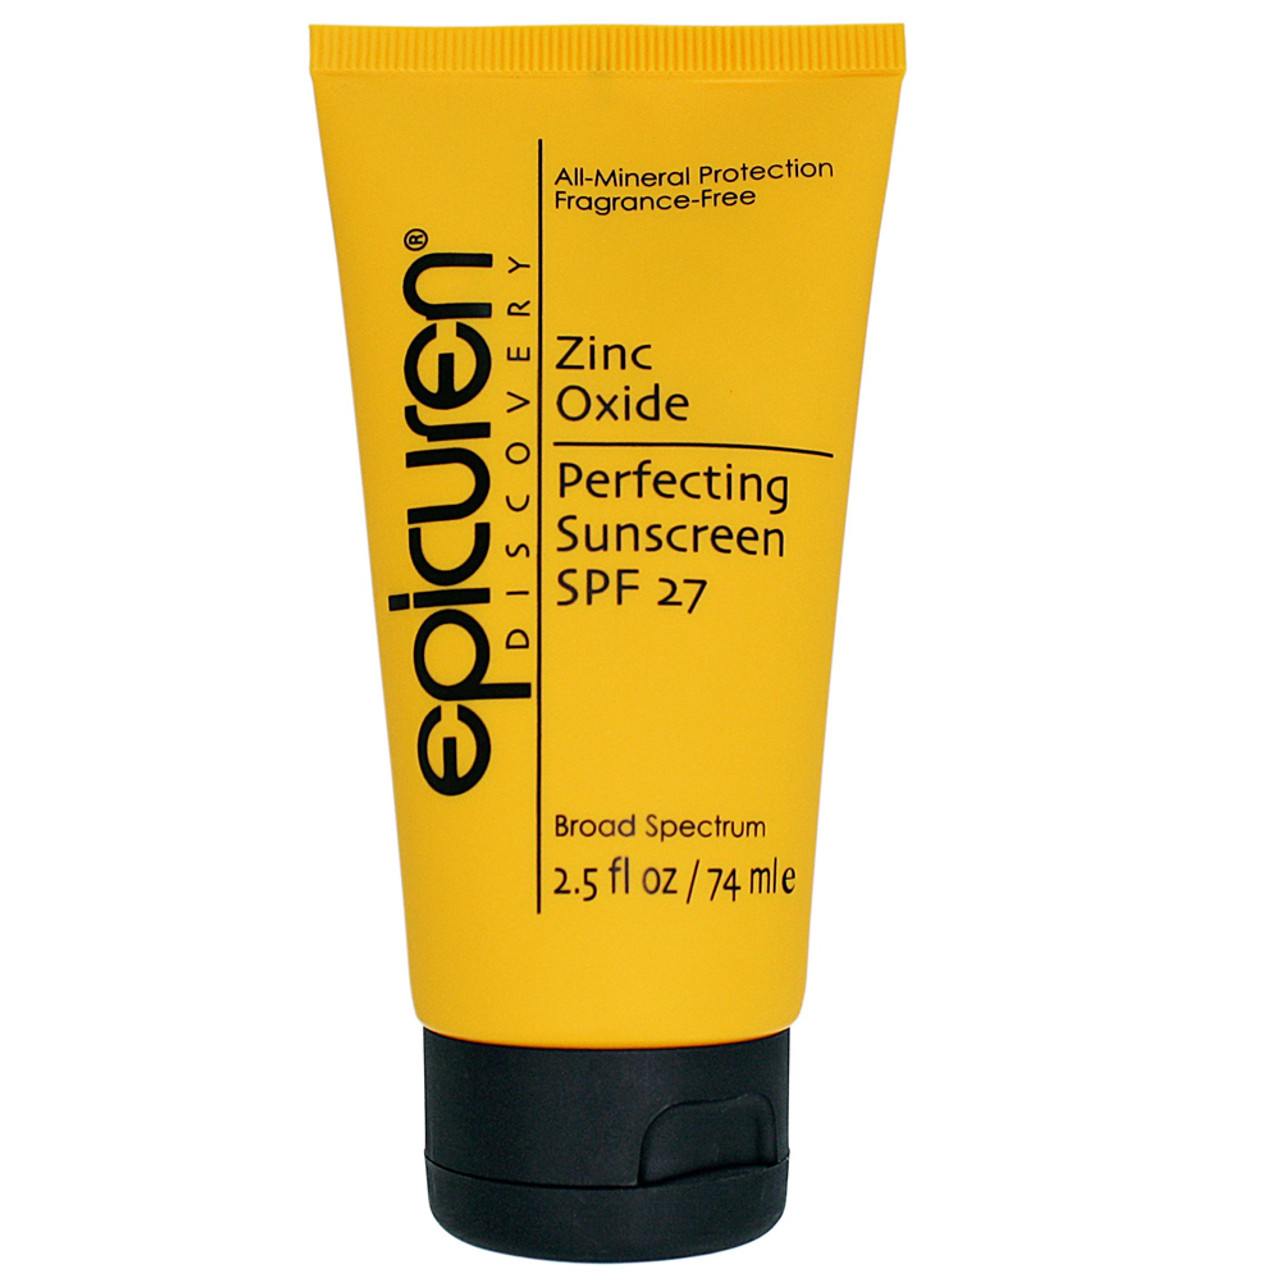 epicuren Discovery Zinc Oxide Perfecting Sunscreen SPF 27